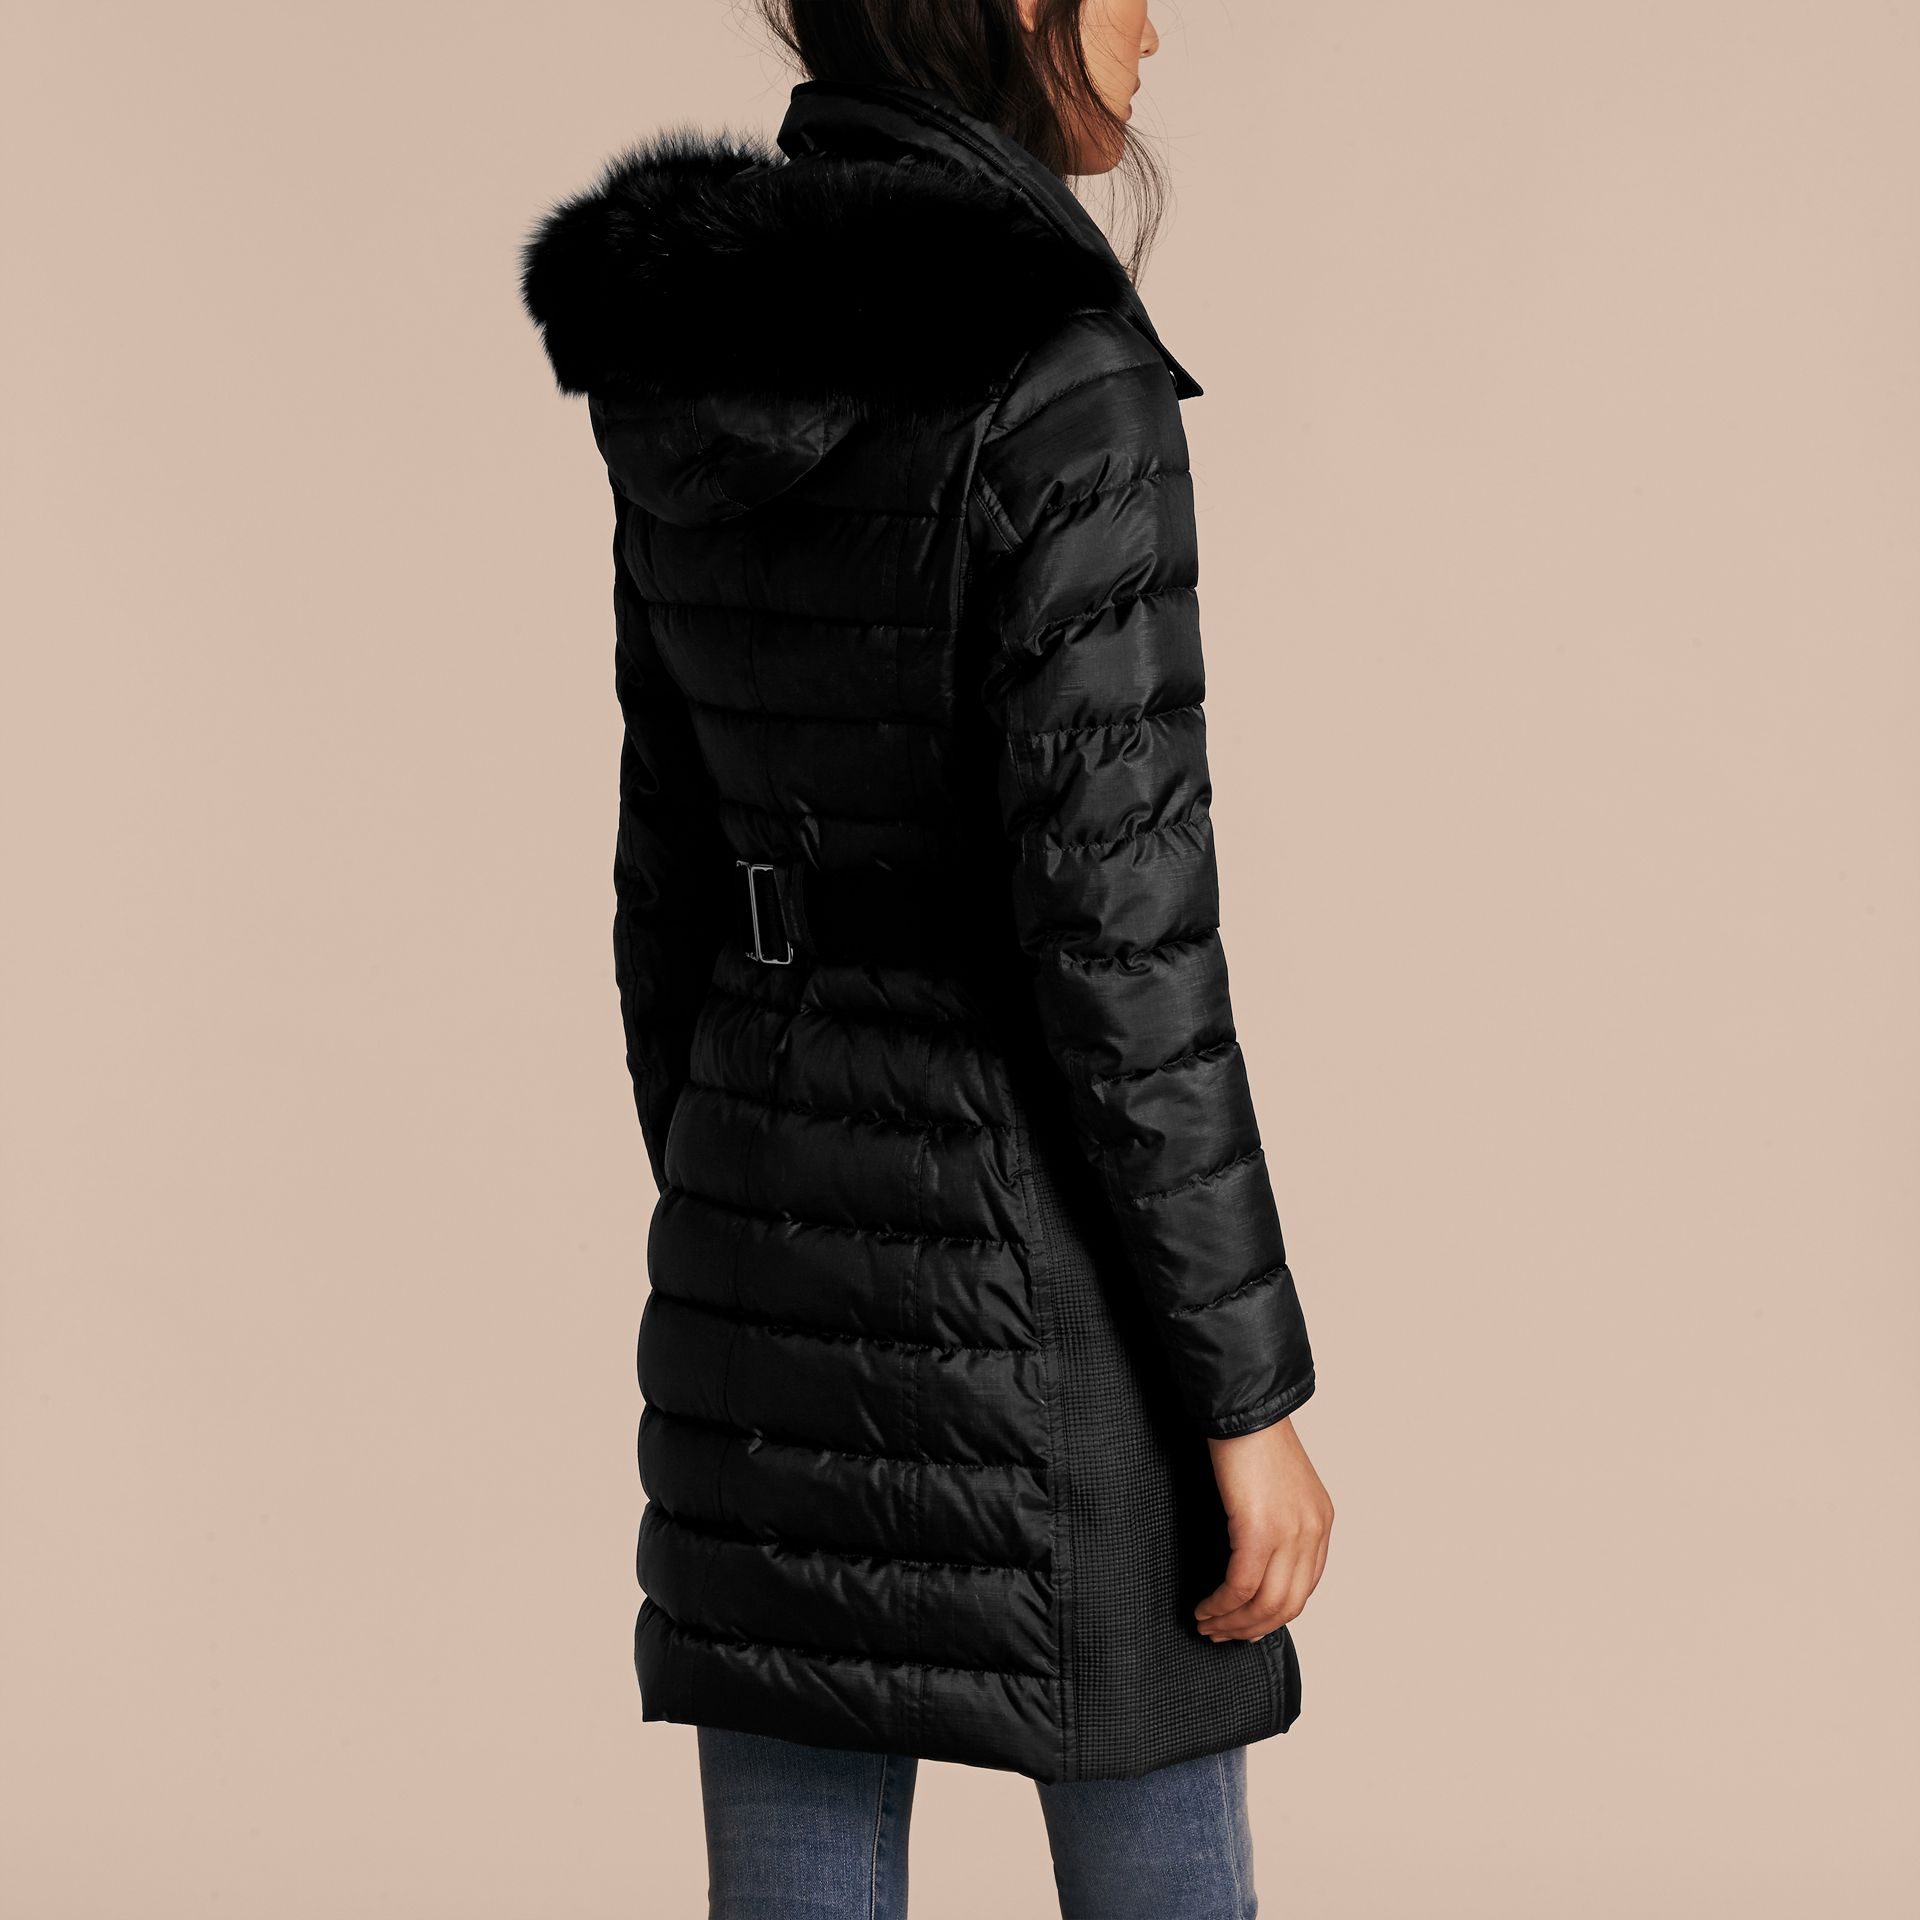 Black Down-filled Coat with Fur-trimmed Hood Black - gallery image 3